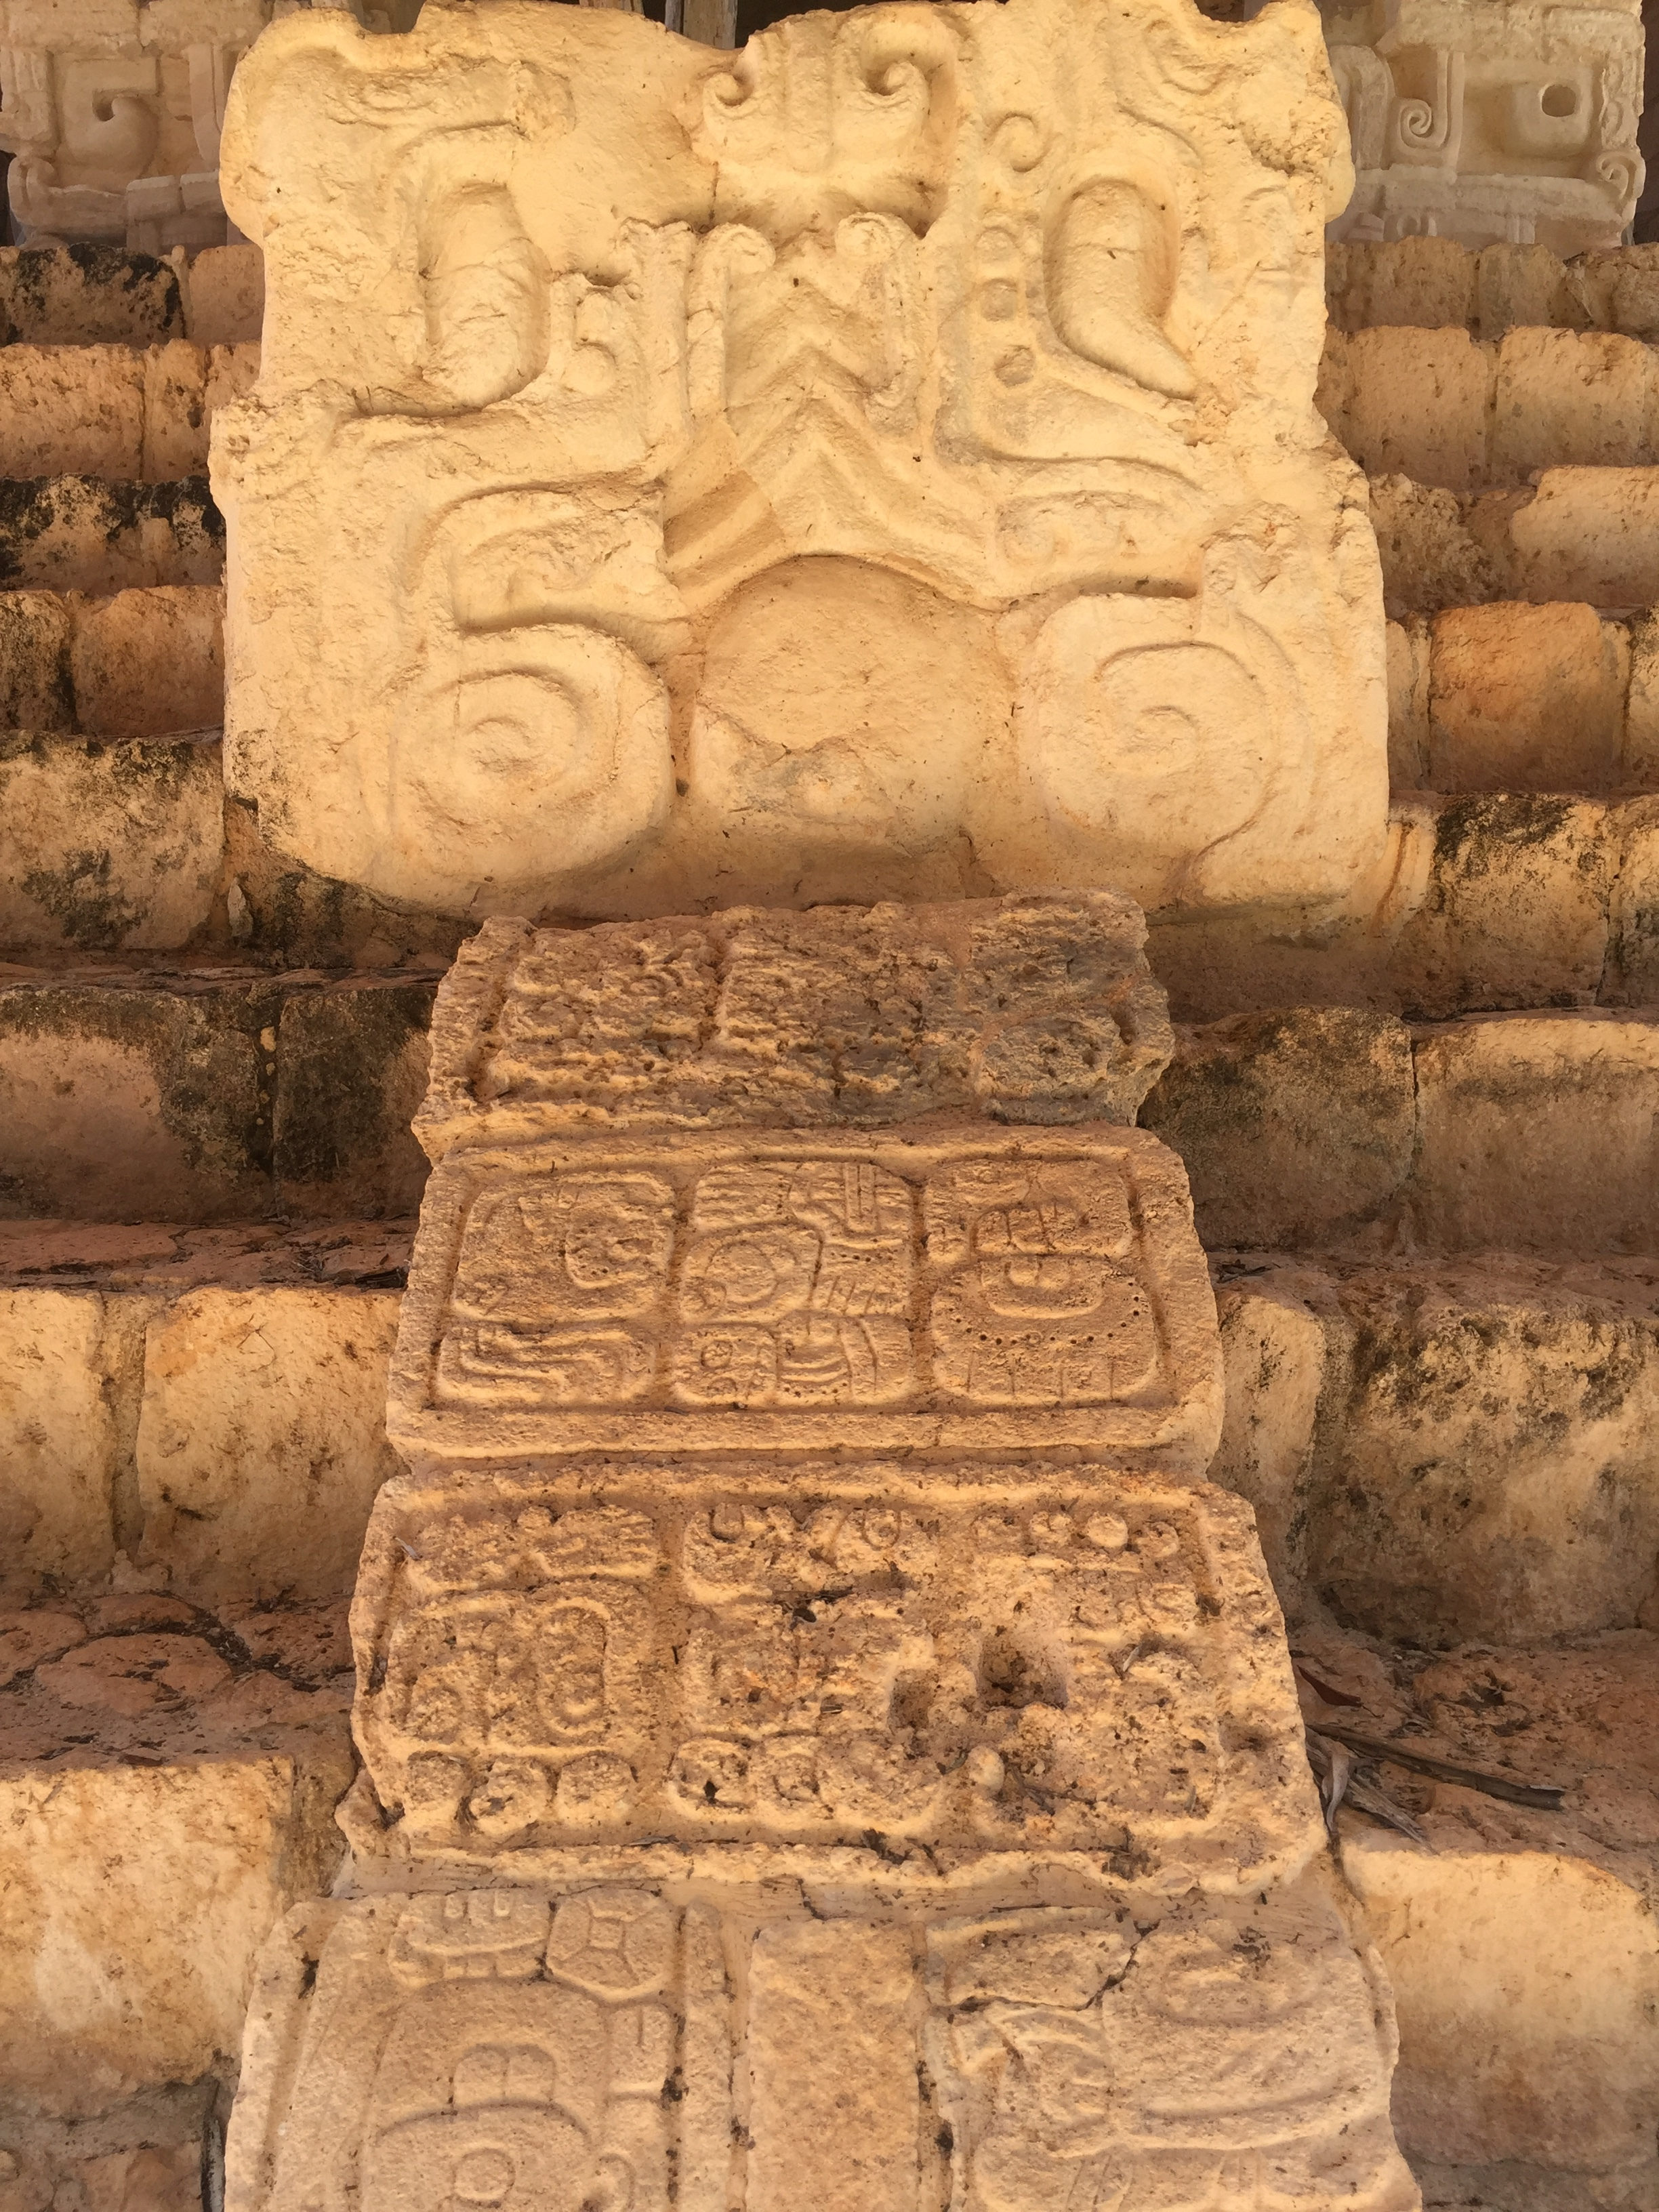 Carvings on the way up